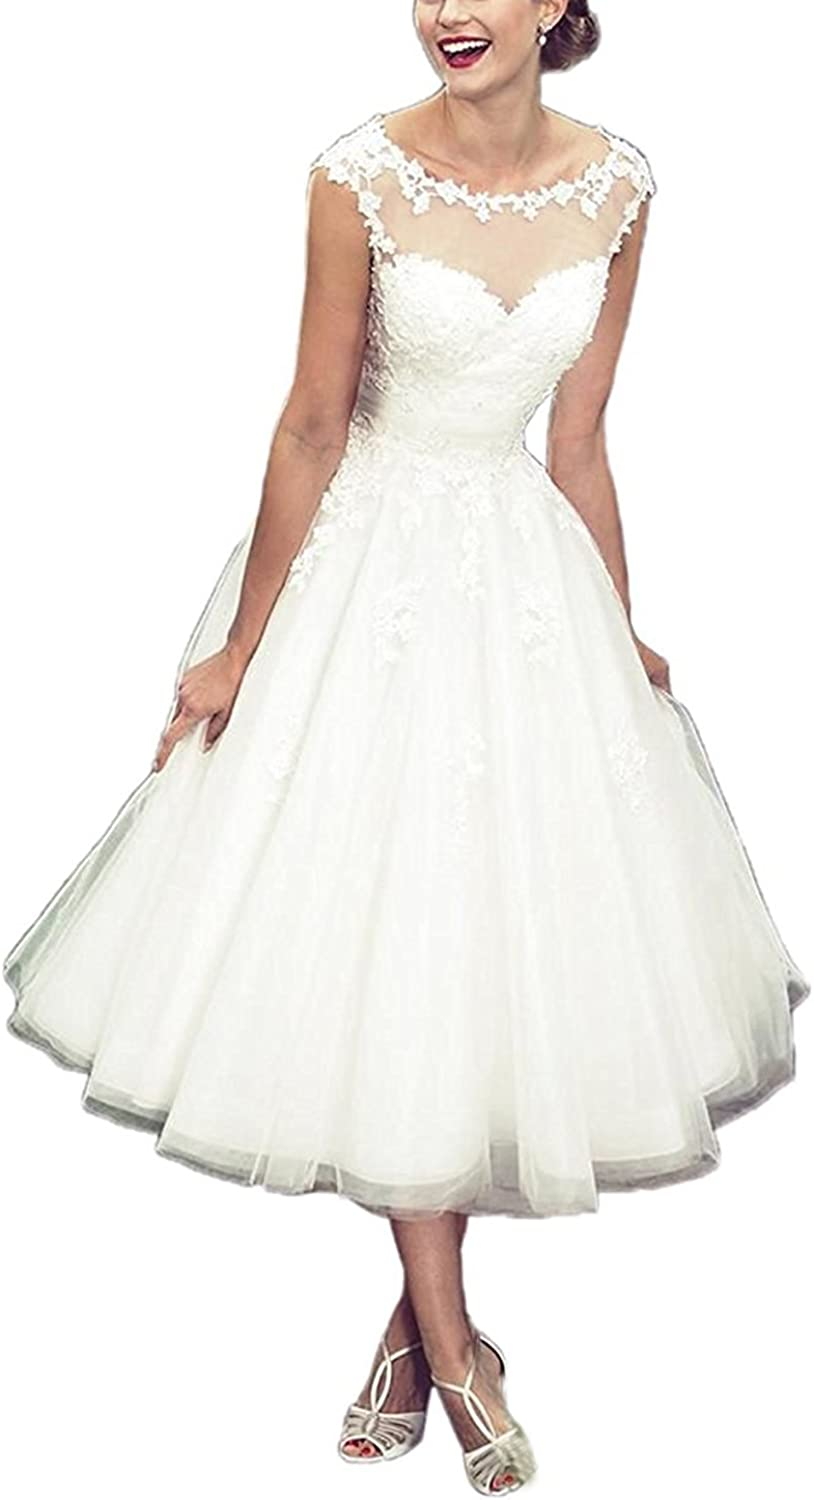 Kmformals Women's Tea Length Sheer Top Short Wedding Dress Bride Gown